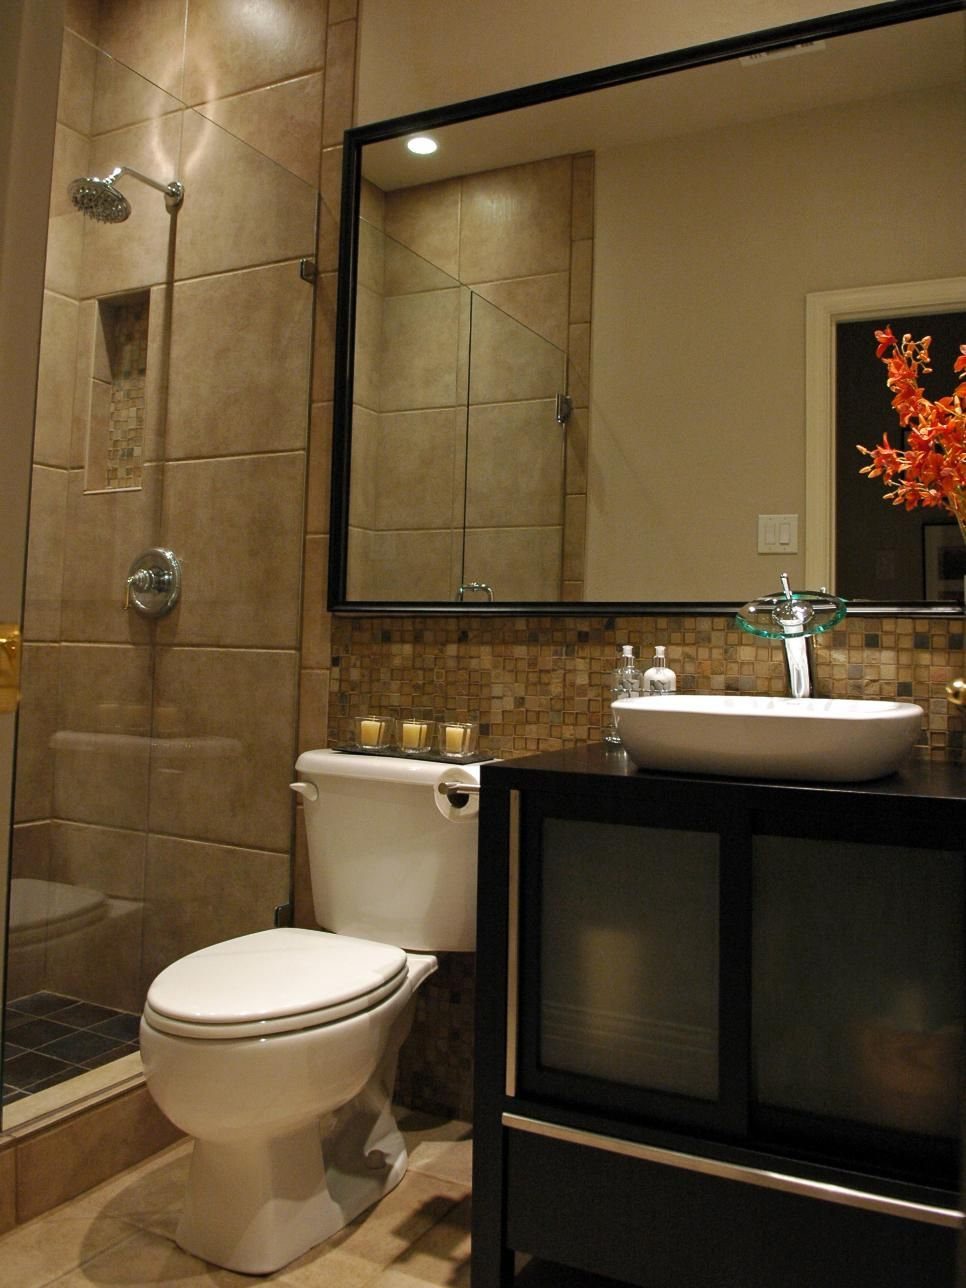 5 must see bathroom transformations oversized mirror for Bathroom photos you must see